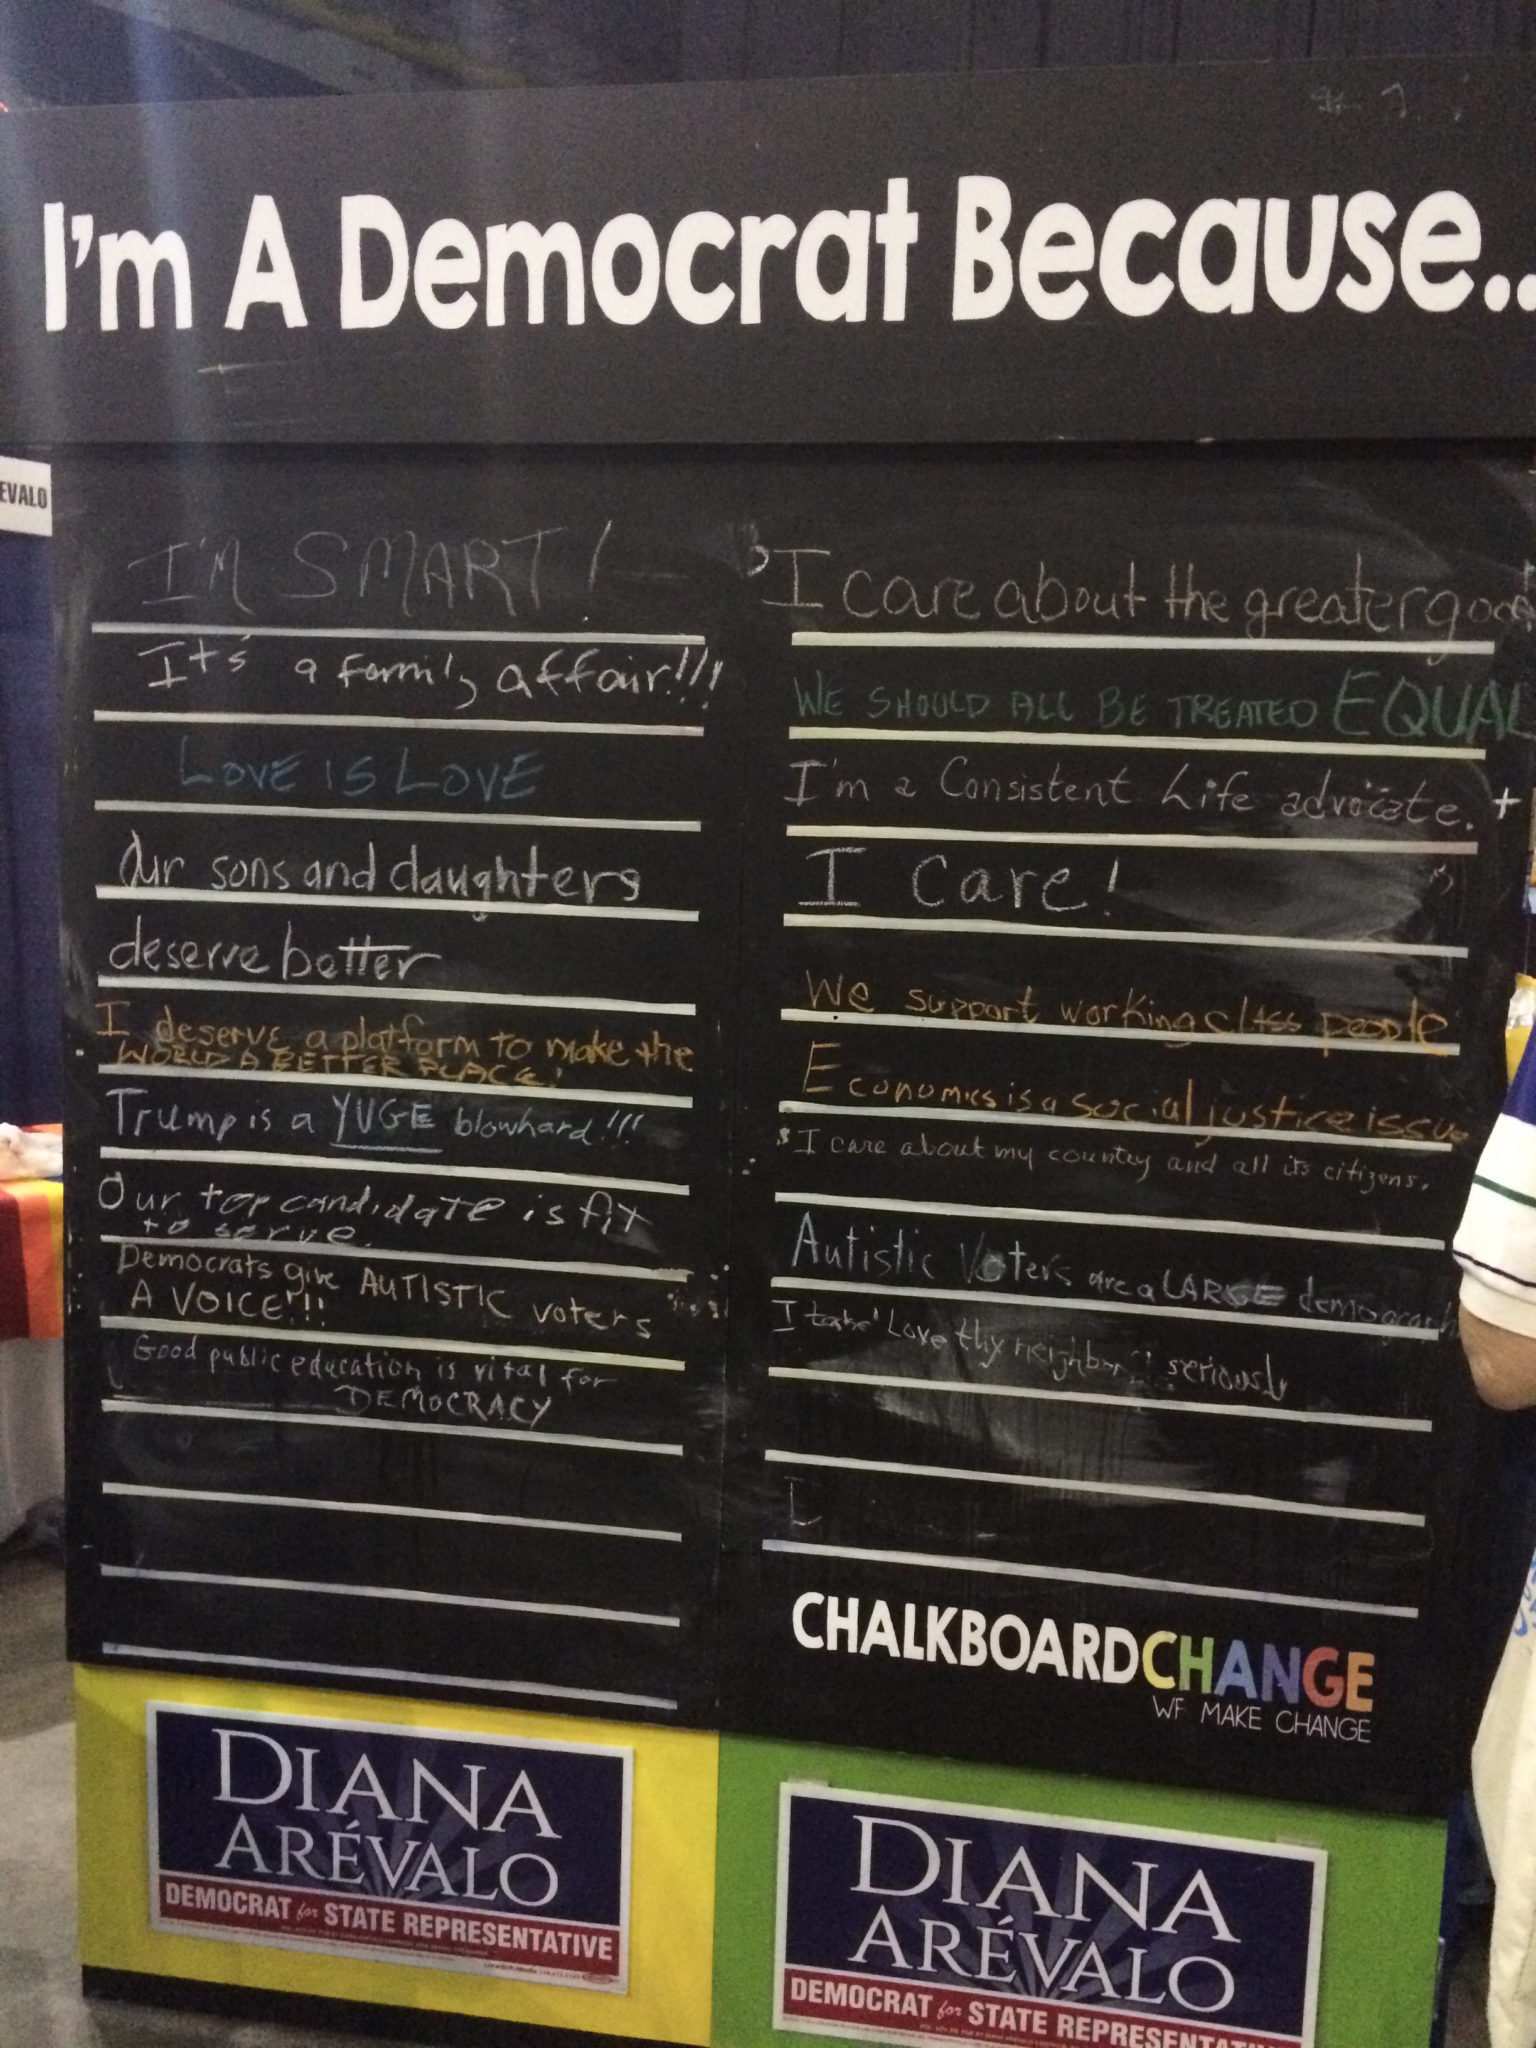 """""""I'm a Democrat because ..."""" chalkboard at the Texas Democratic Convention."""